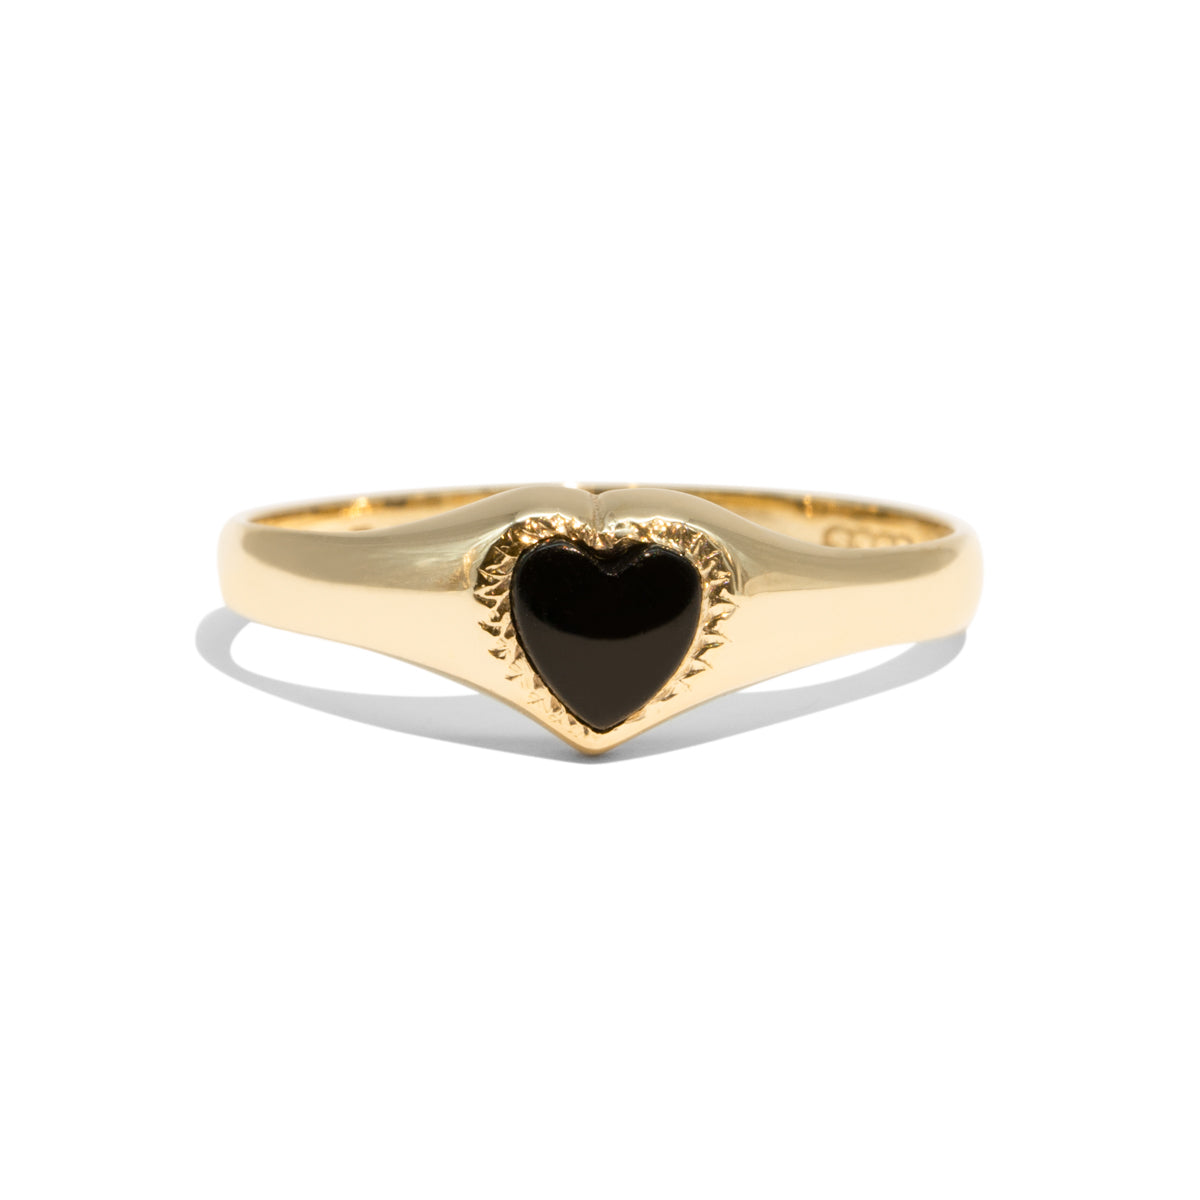 The Blair Vintage Onyx Ring